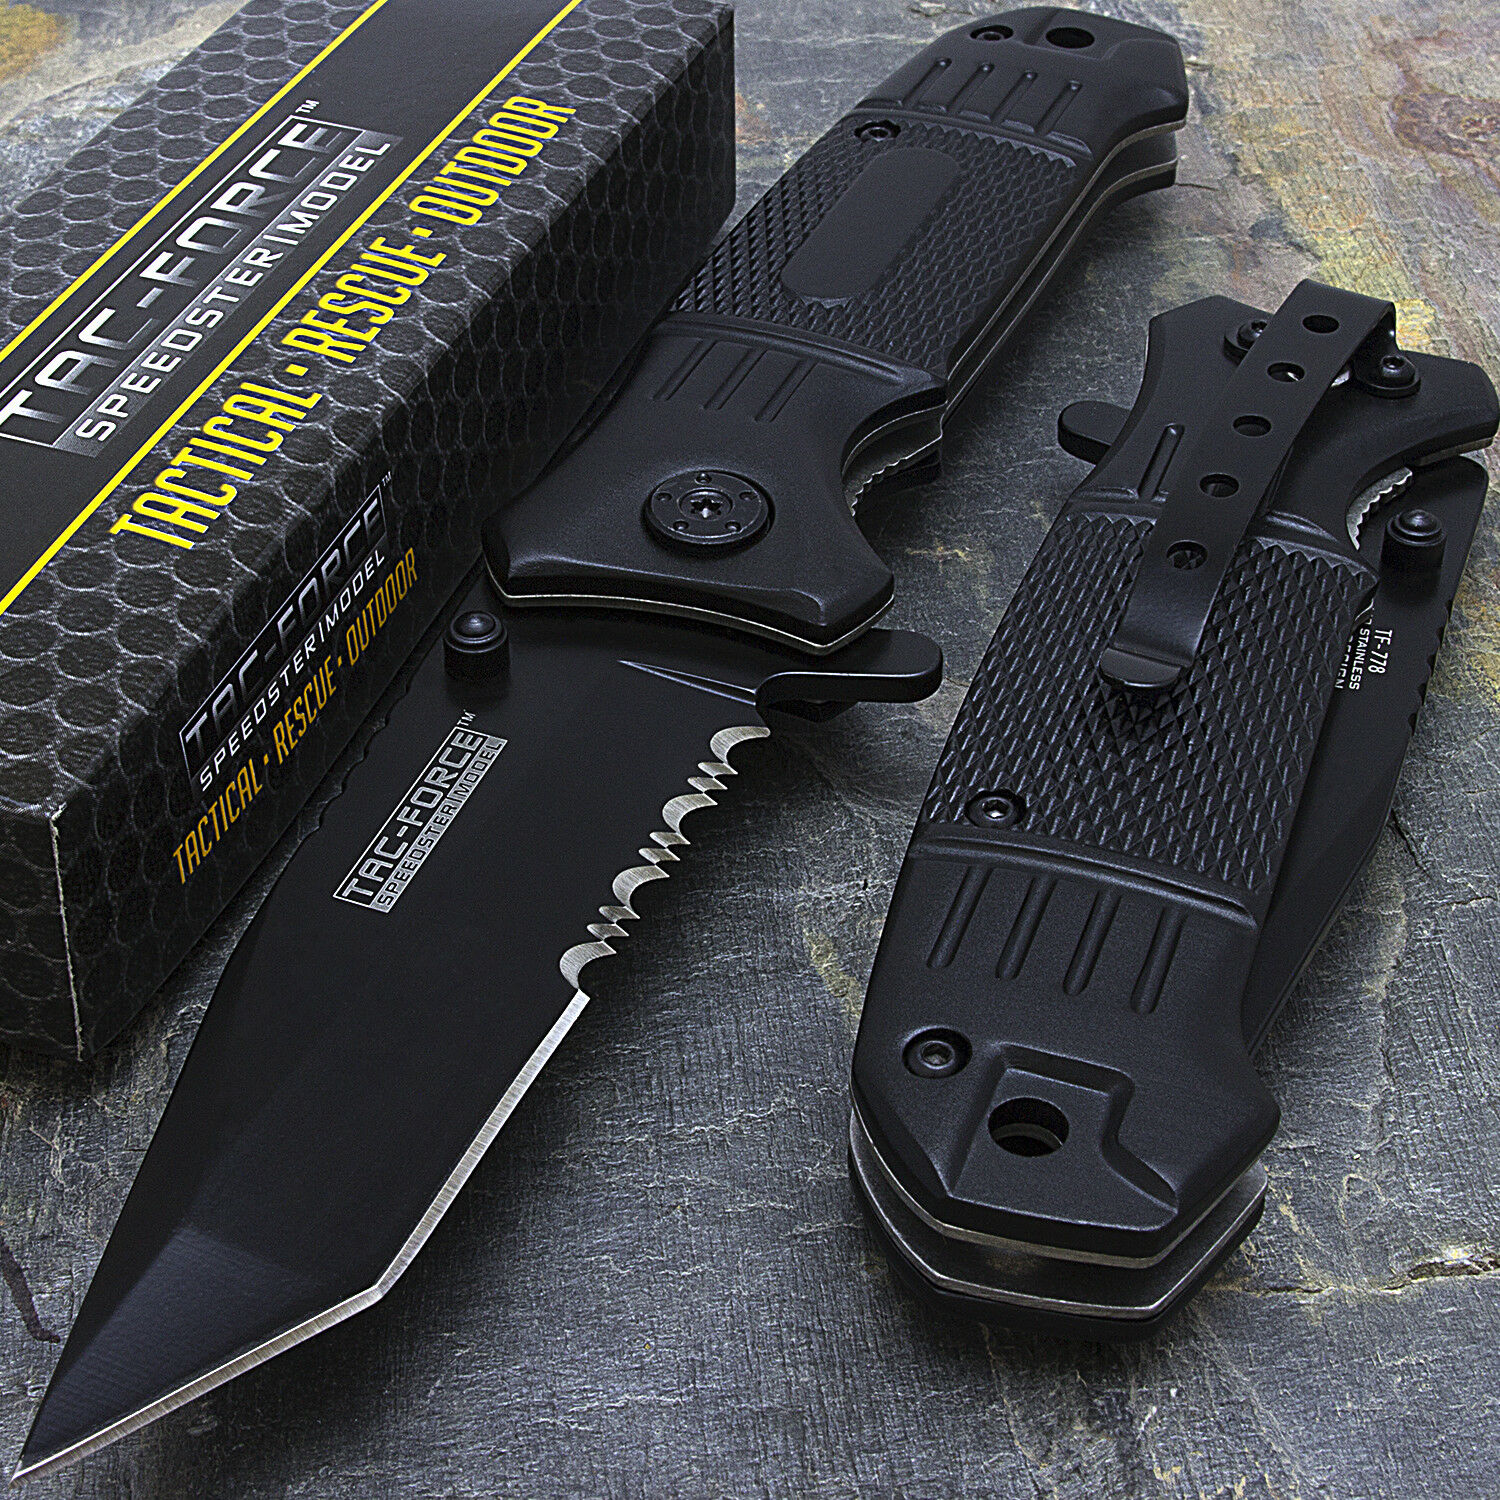 Купить Tac-Force - 7.75 TAC FORCE HALF SERRATED TANTO SPRING ASSISTED TACTICAL FOLDING KNIFE Blade